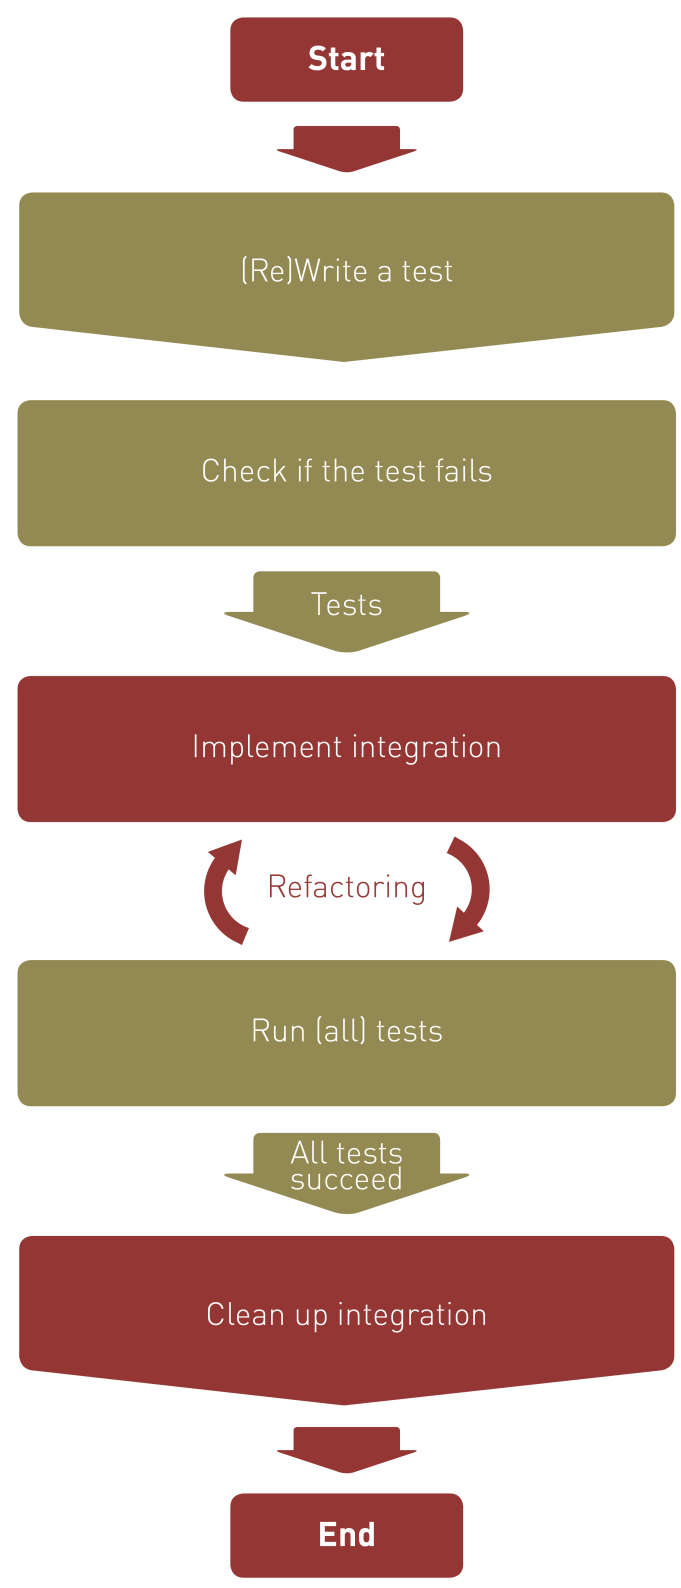 ICC Handbk P a g e - 52 61 TEST-DRIVEN DEVELOPMENT Test-driven develpment (TDD) is ne f the best ways t ensure quality f unit testing in integratin develpment.